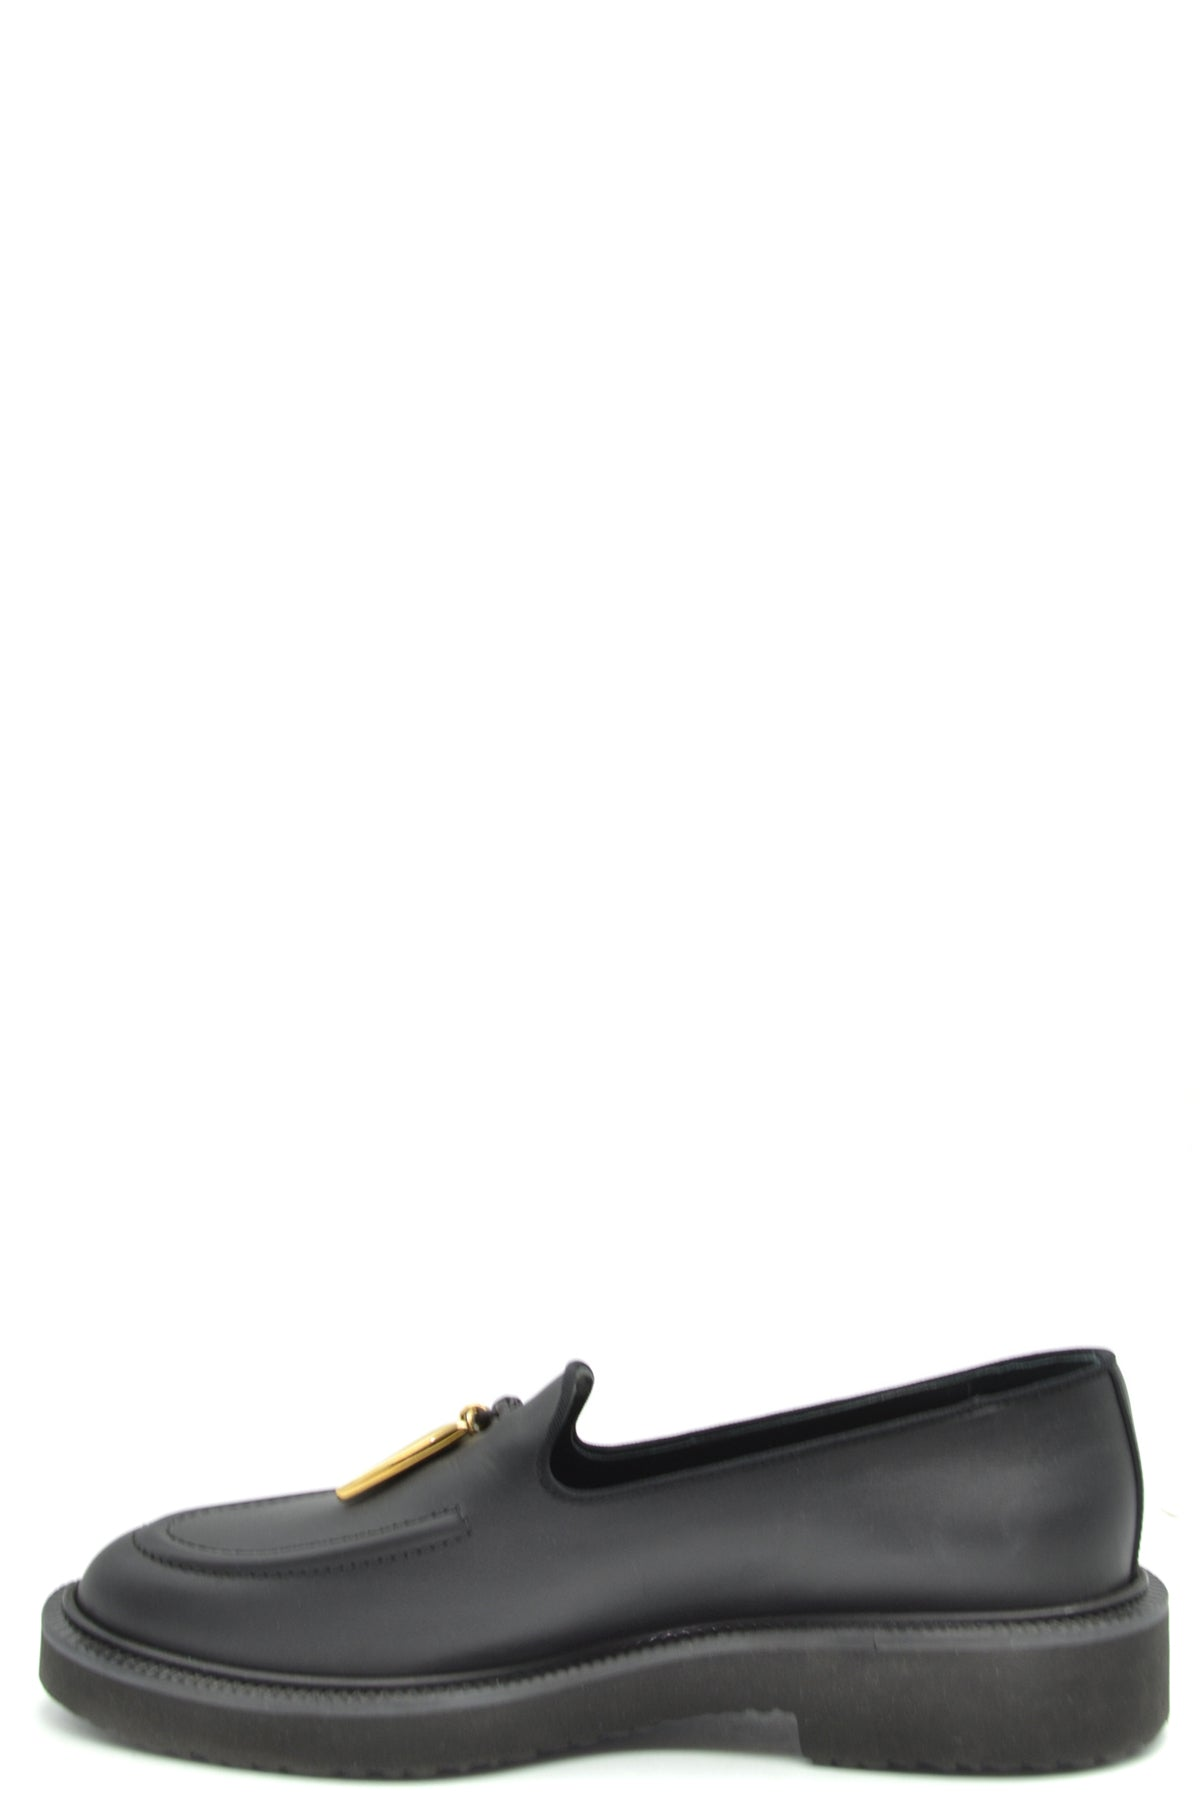 Shoes Giuseppe Zanotti-Classic flats - WOMAN-Product Details Type Of Accessory: ShoesTerms: New With LabelYear: 2018Main Color: BlackGender: WomanMade In: ItalyManufacturer Part Number: I860025Size: EuSeason: Fall / WinterComposition: Leather 100%-Keyomi-Sook